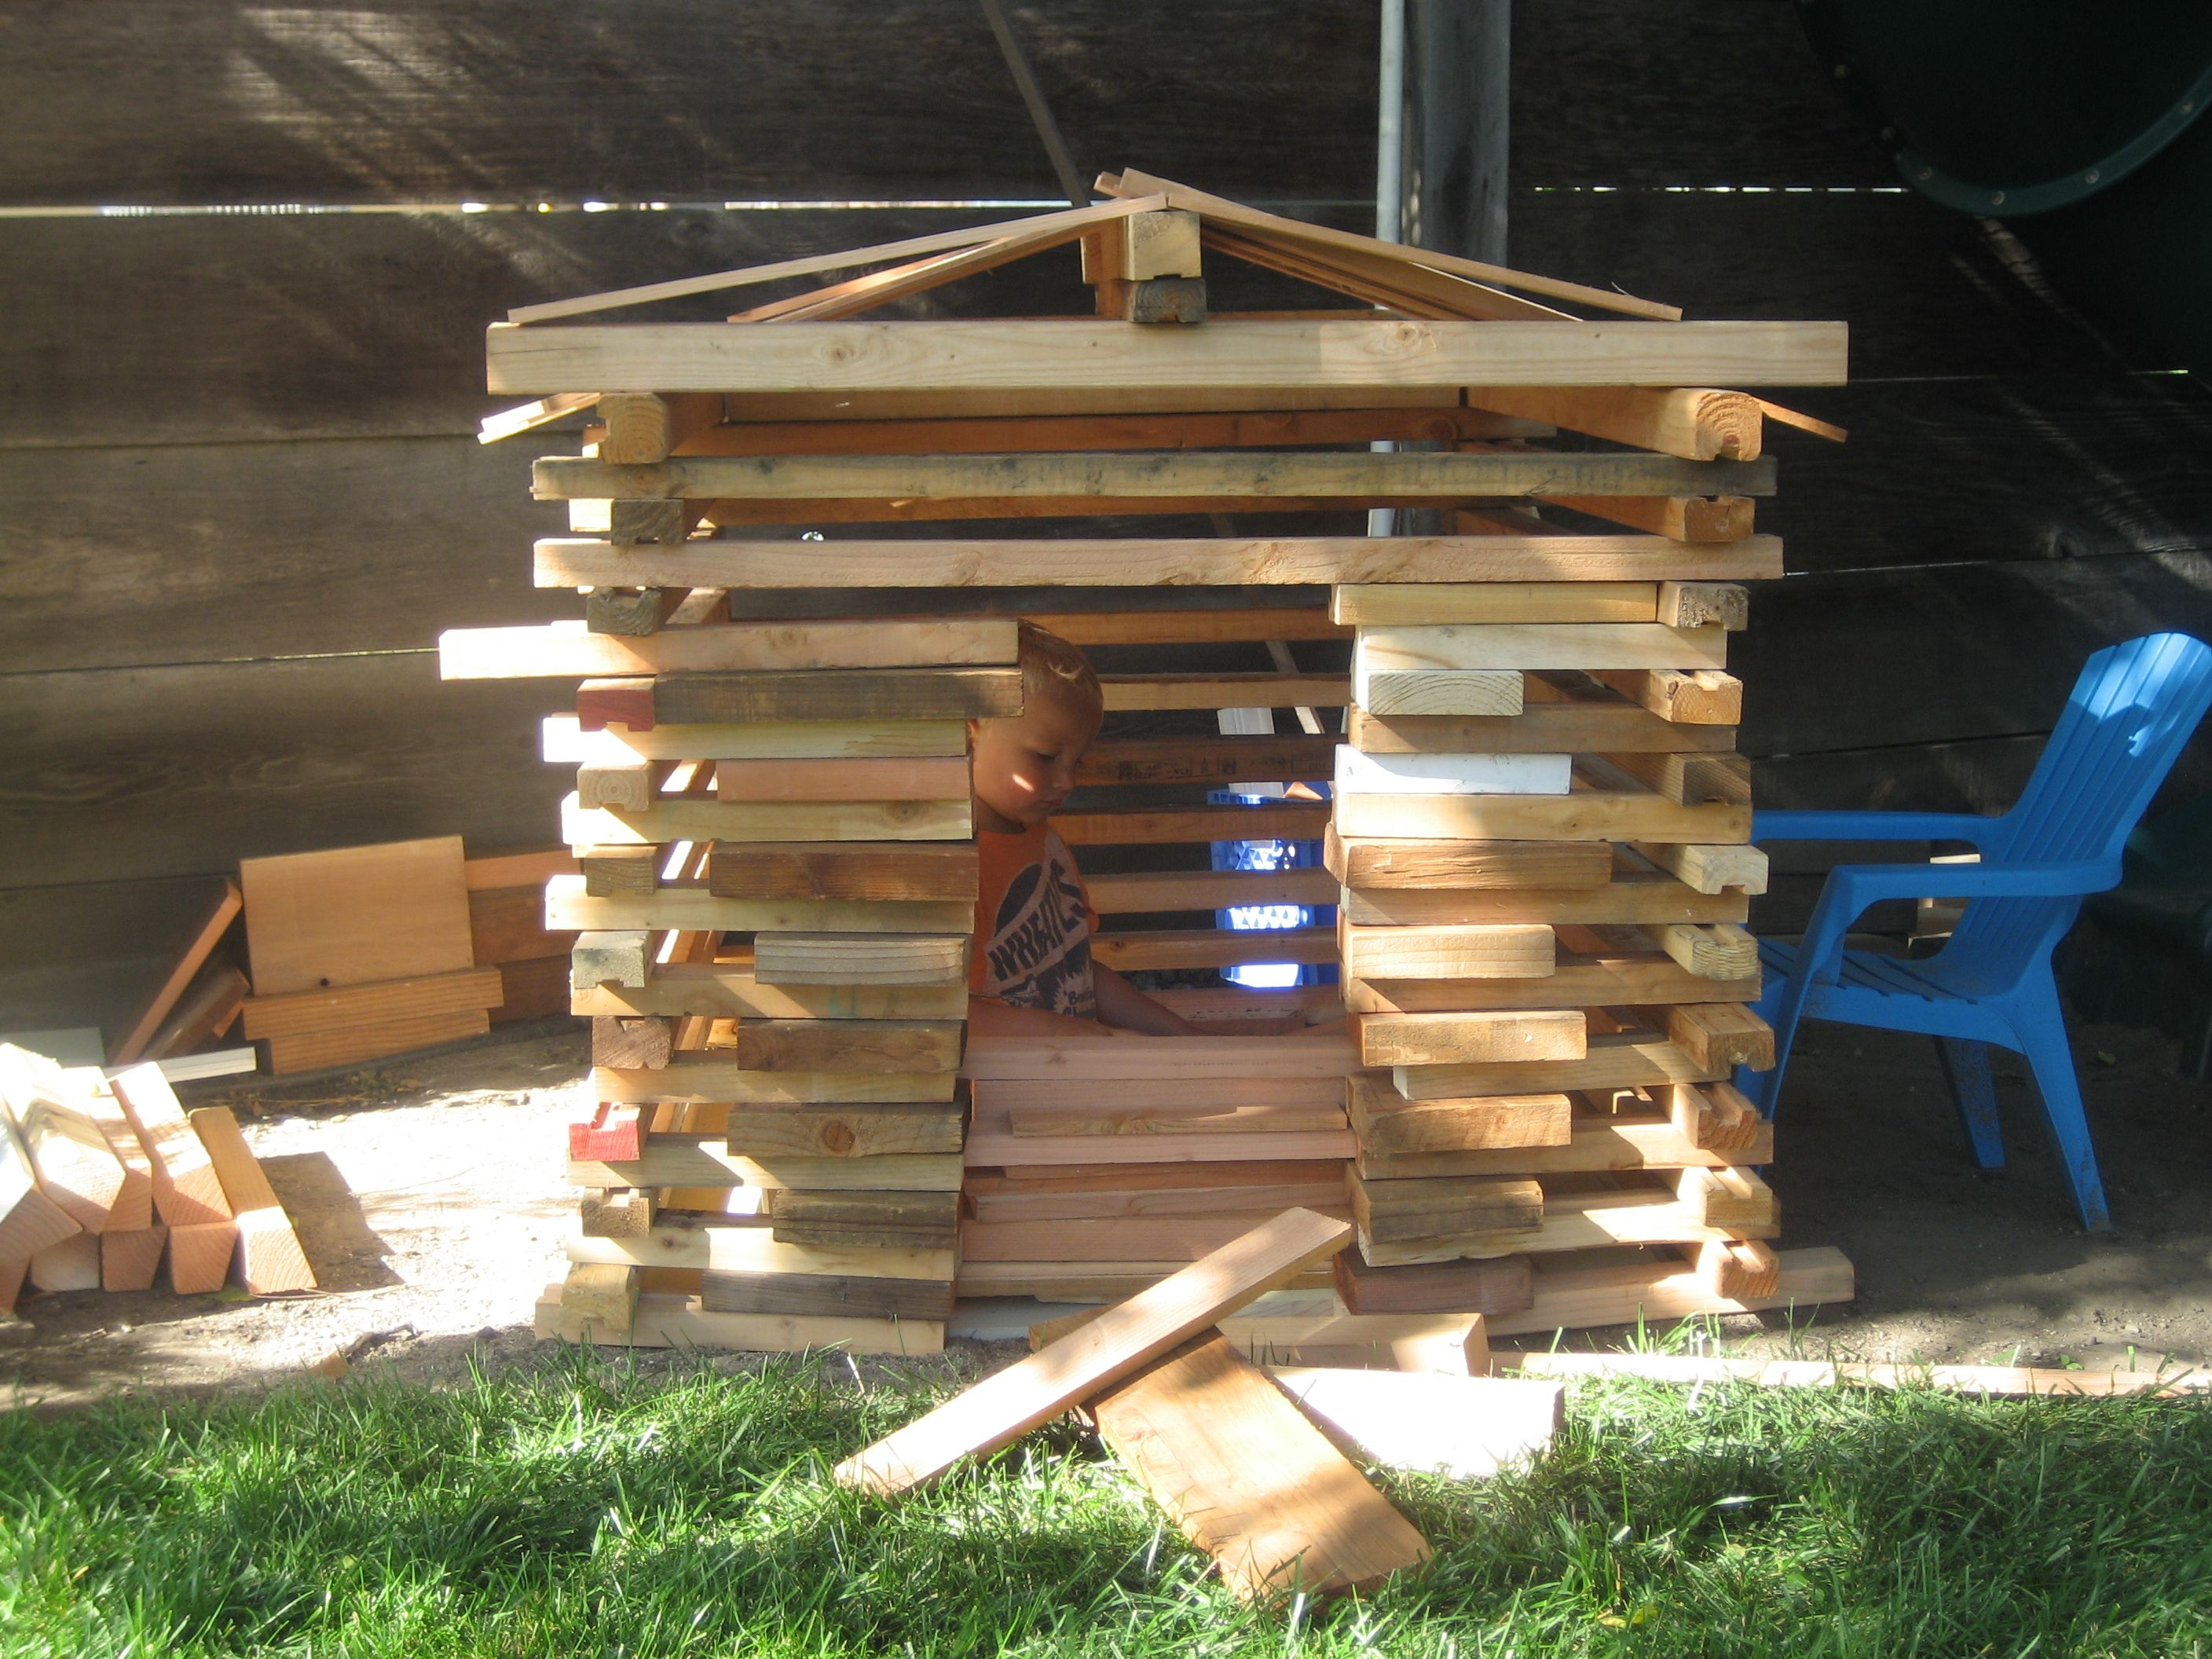 Great Summer Activity For Kids Get Free Wood Scraps From Your Local Lumber Yard And Let Your Kids Bui Building For Kids Summer Activities For Kids Wood Scraps